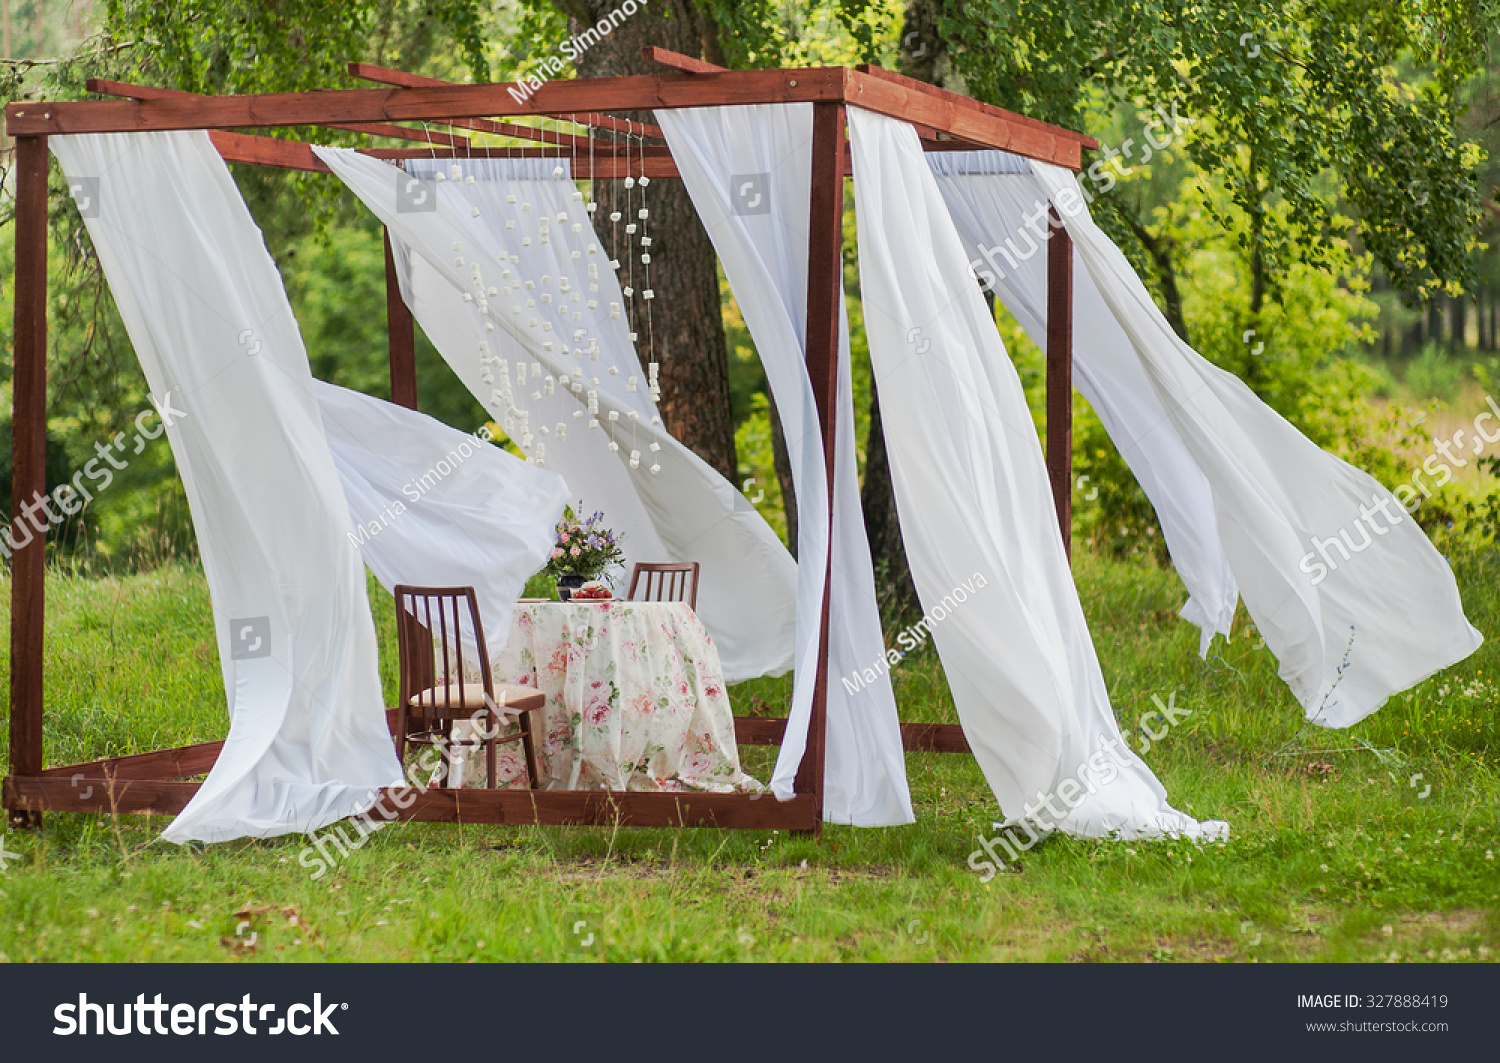 Gazebo Wedding Invitations: Outdoor Gazebo White Curtains Wedding Decorations Stock